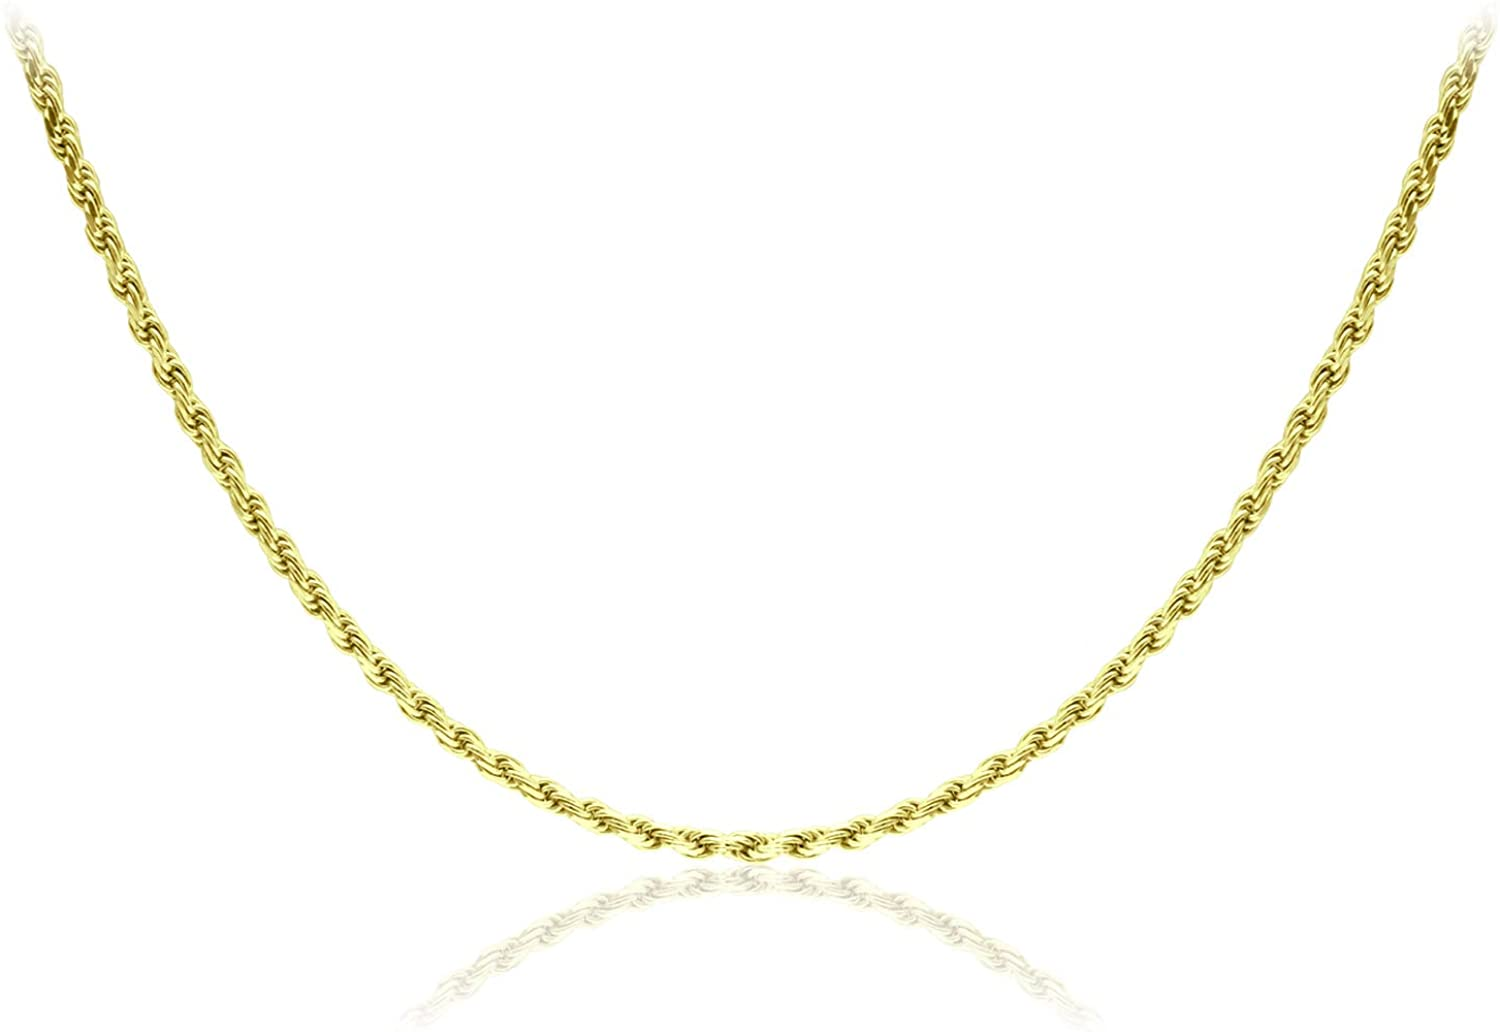 Michael Zweig 925 Sterling Silver Necklace for Women - Diamond Cut Sterling Silver Rope Chain Necklace | 2.0 mm Thickness with Spring Ring, Italy Tag